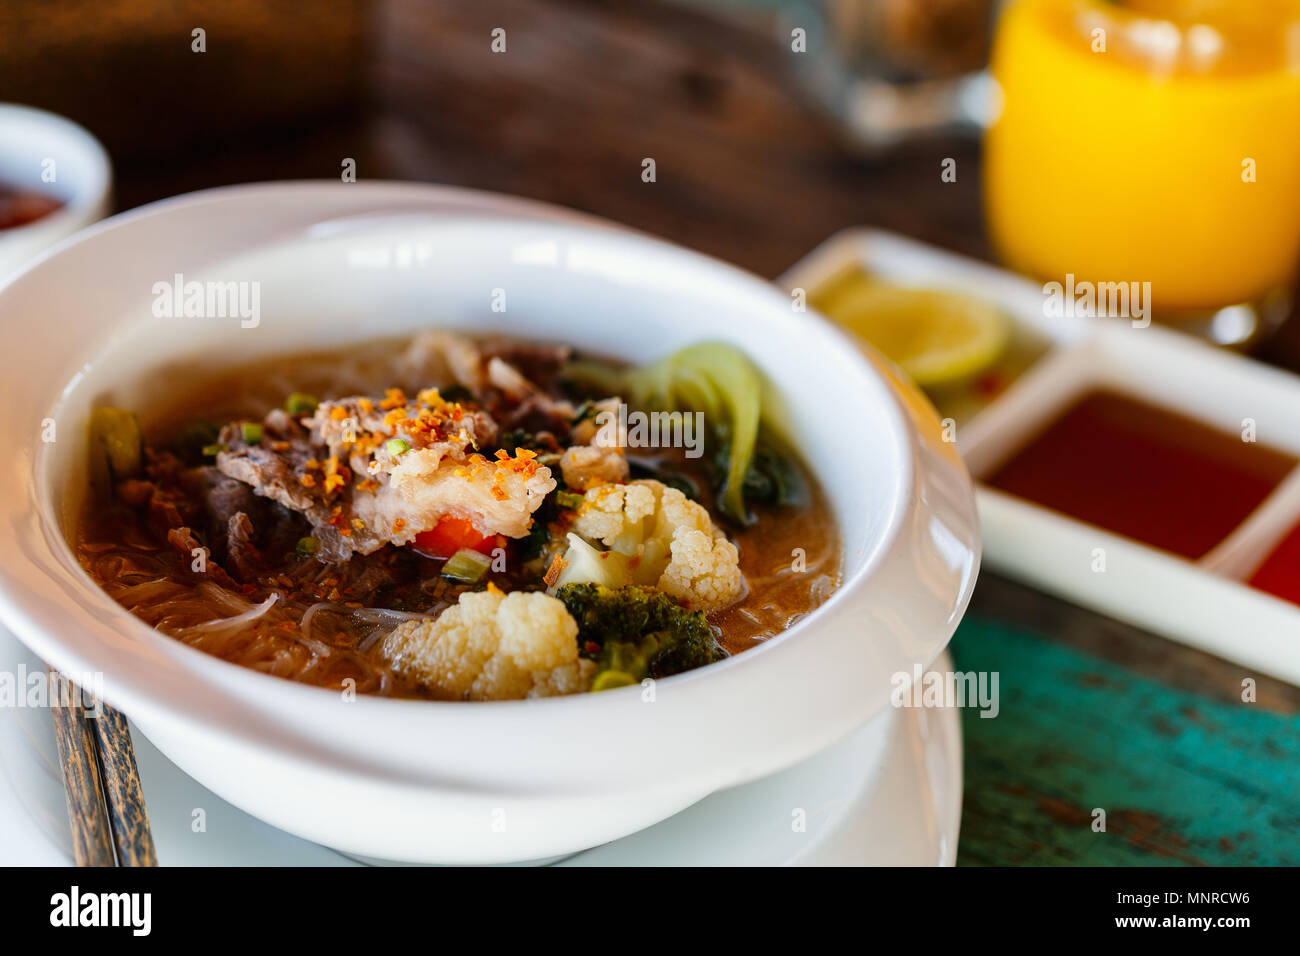 Delicious Asian noodle and meat dish served for breakfast or lunch - Stock Image